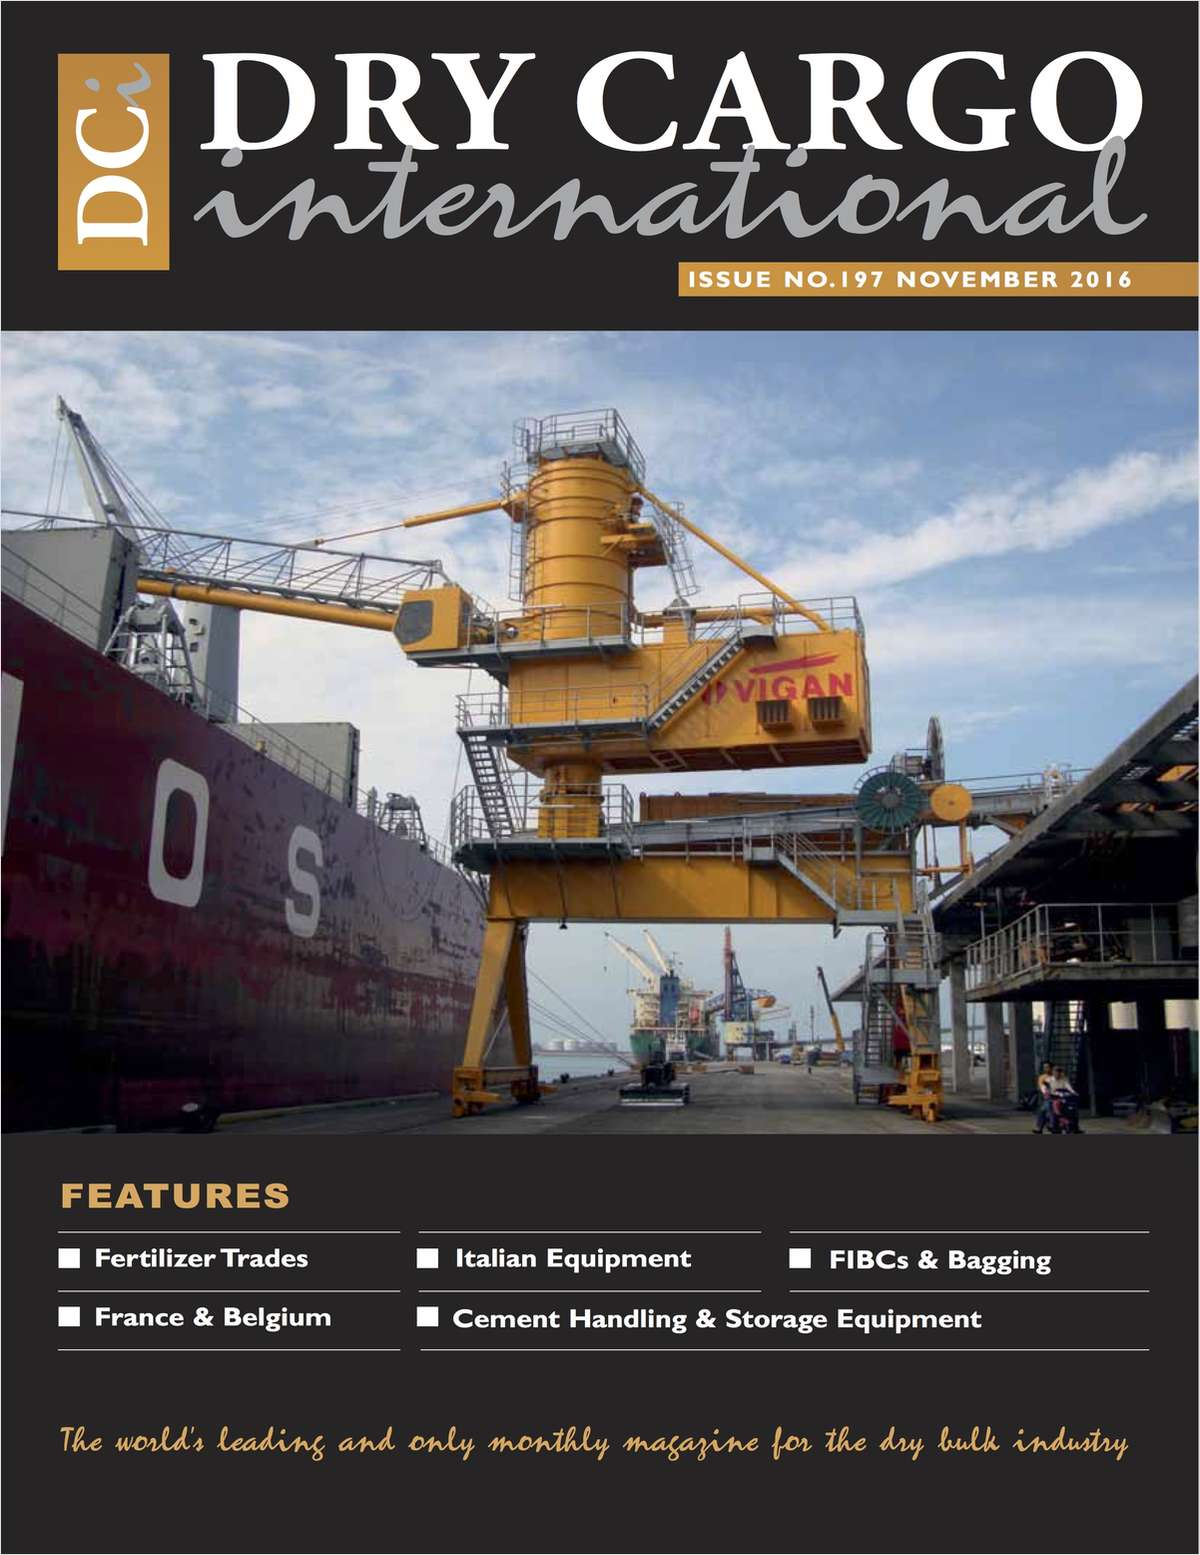 Dry Cargo International (DCi) - November 2016 Issue